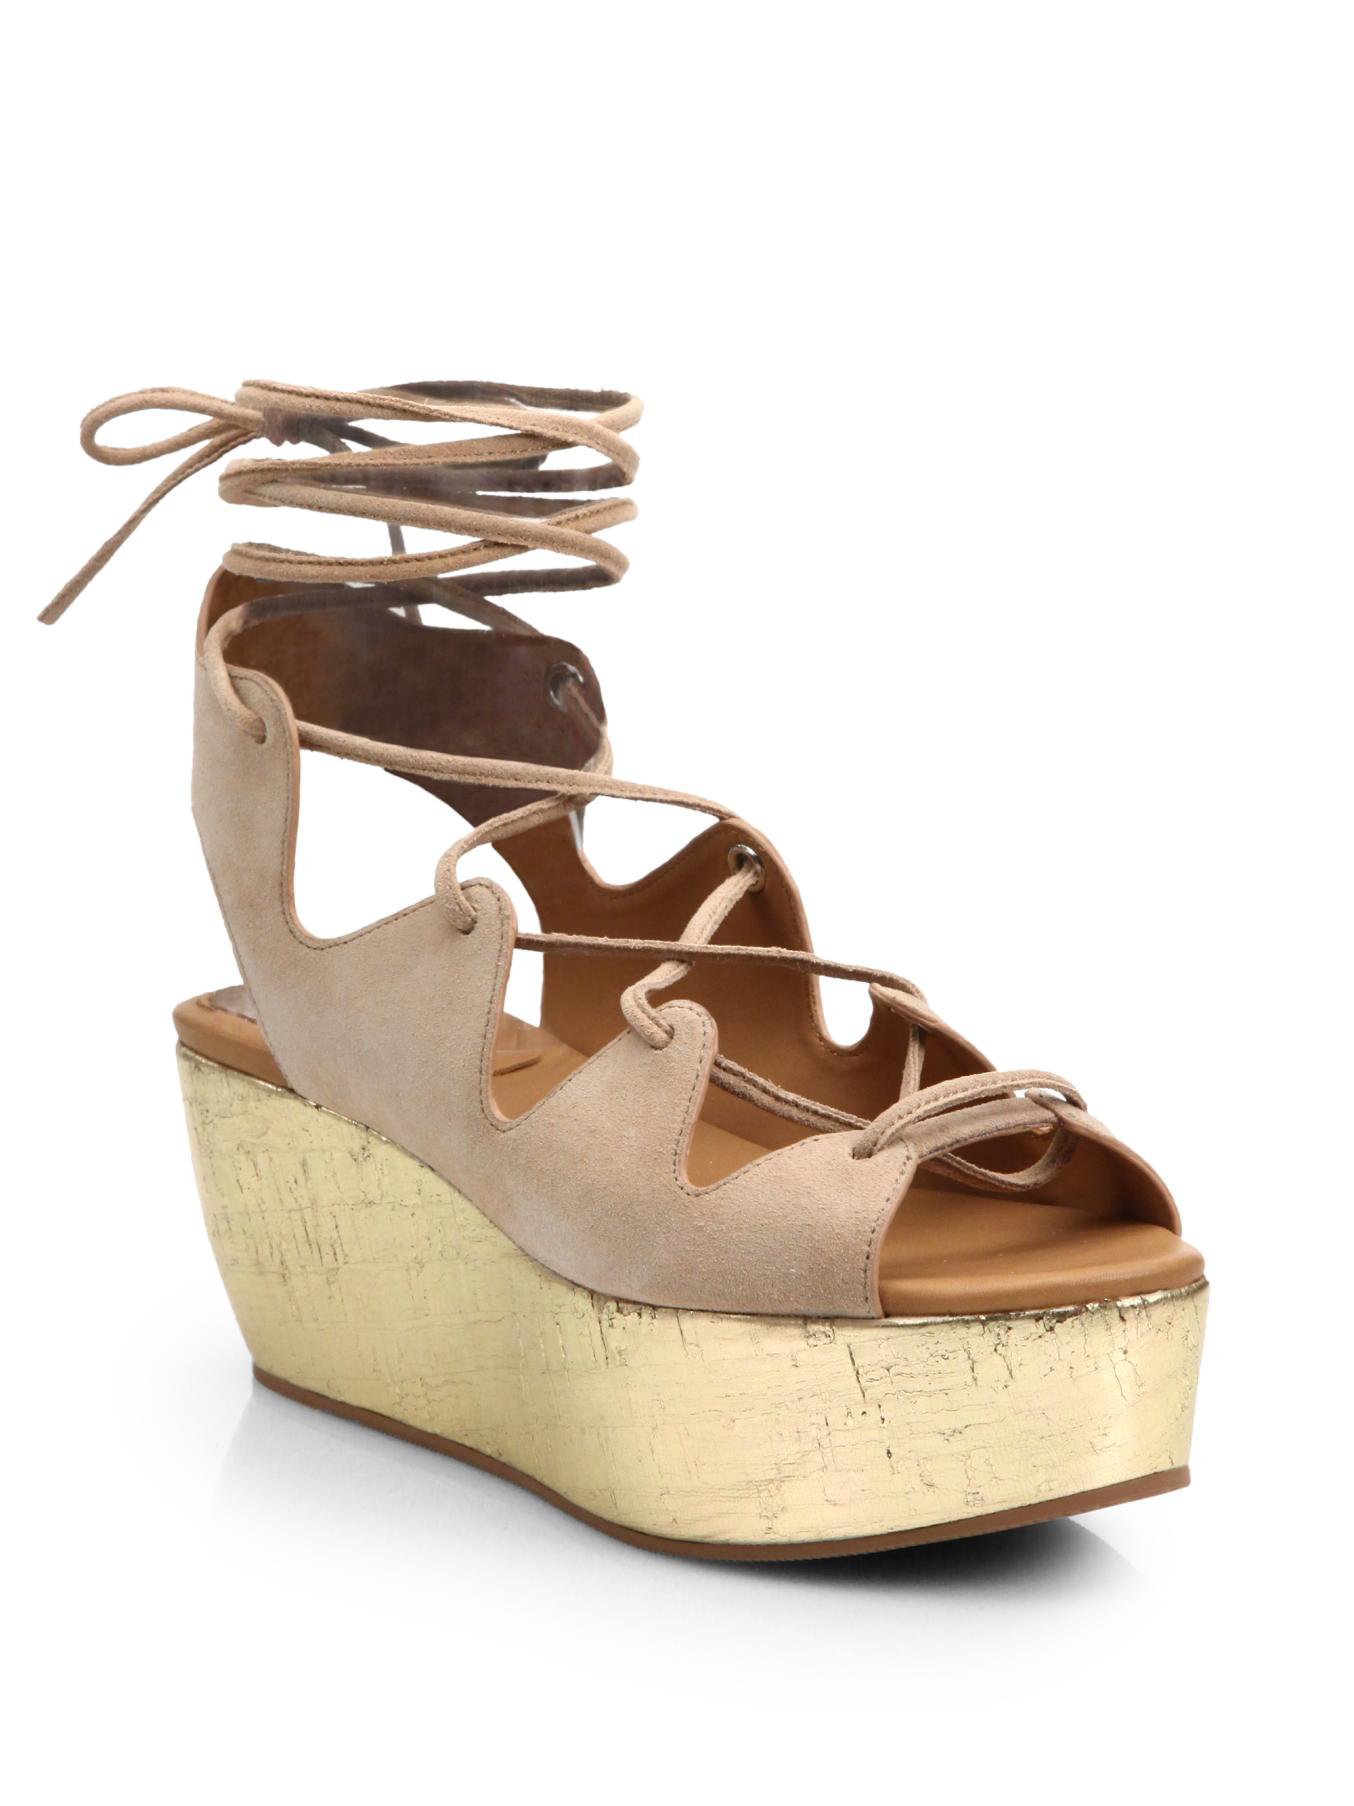 9d6476b346f Lyst - See By Chloé Lace-Up Metallic Leather   Suede Platform ...